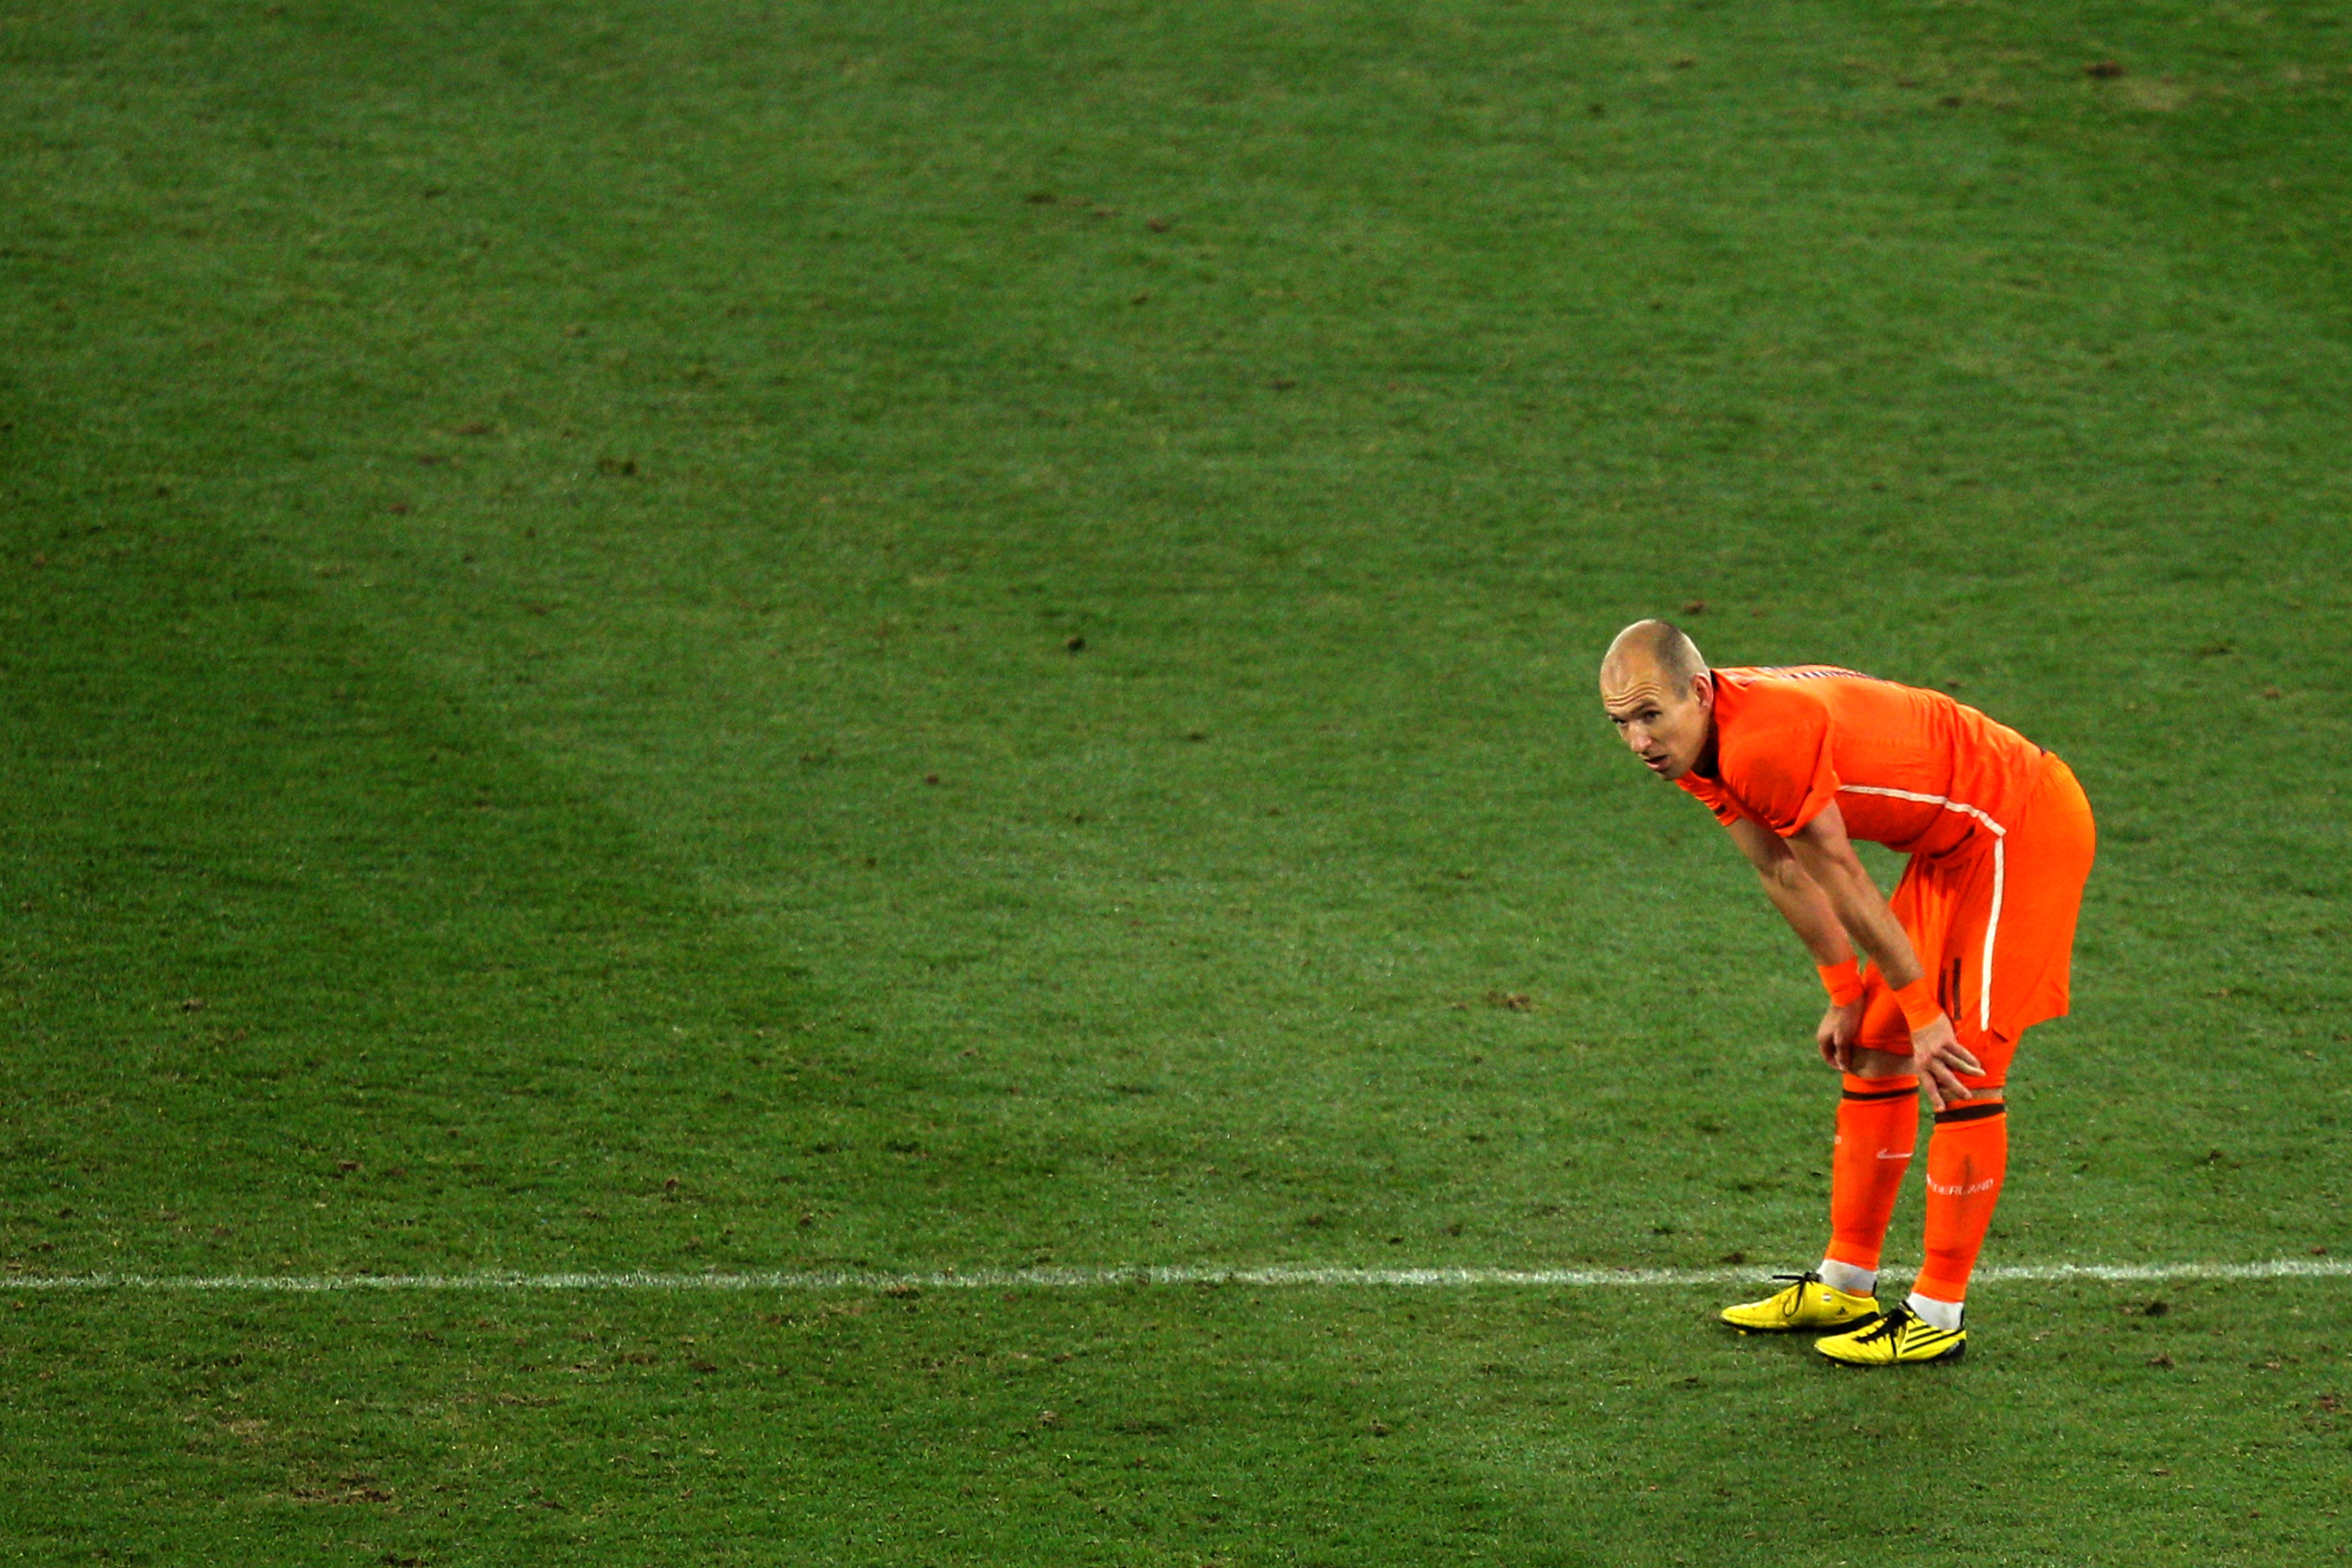 JOHANNESBURG, SOUTH AFRICA - JULY 11:  Dejected Arjen Robben of the Netherlands after defeat during the 2010 FIFA World Cup South Africa Final match between Netherlands and Spain at Soccer City Stadium on July 11, 2010 in Johannesburg, South Africa.  (Pho